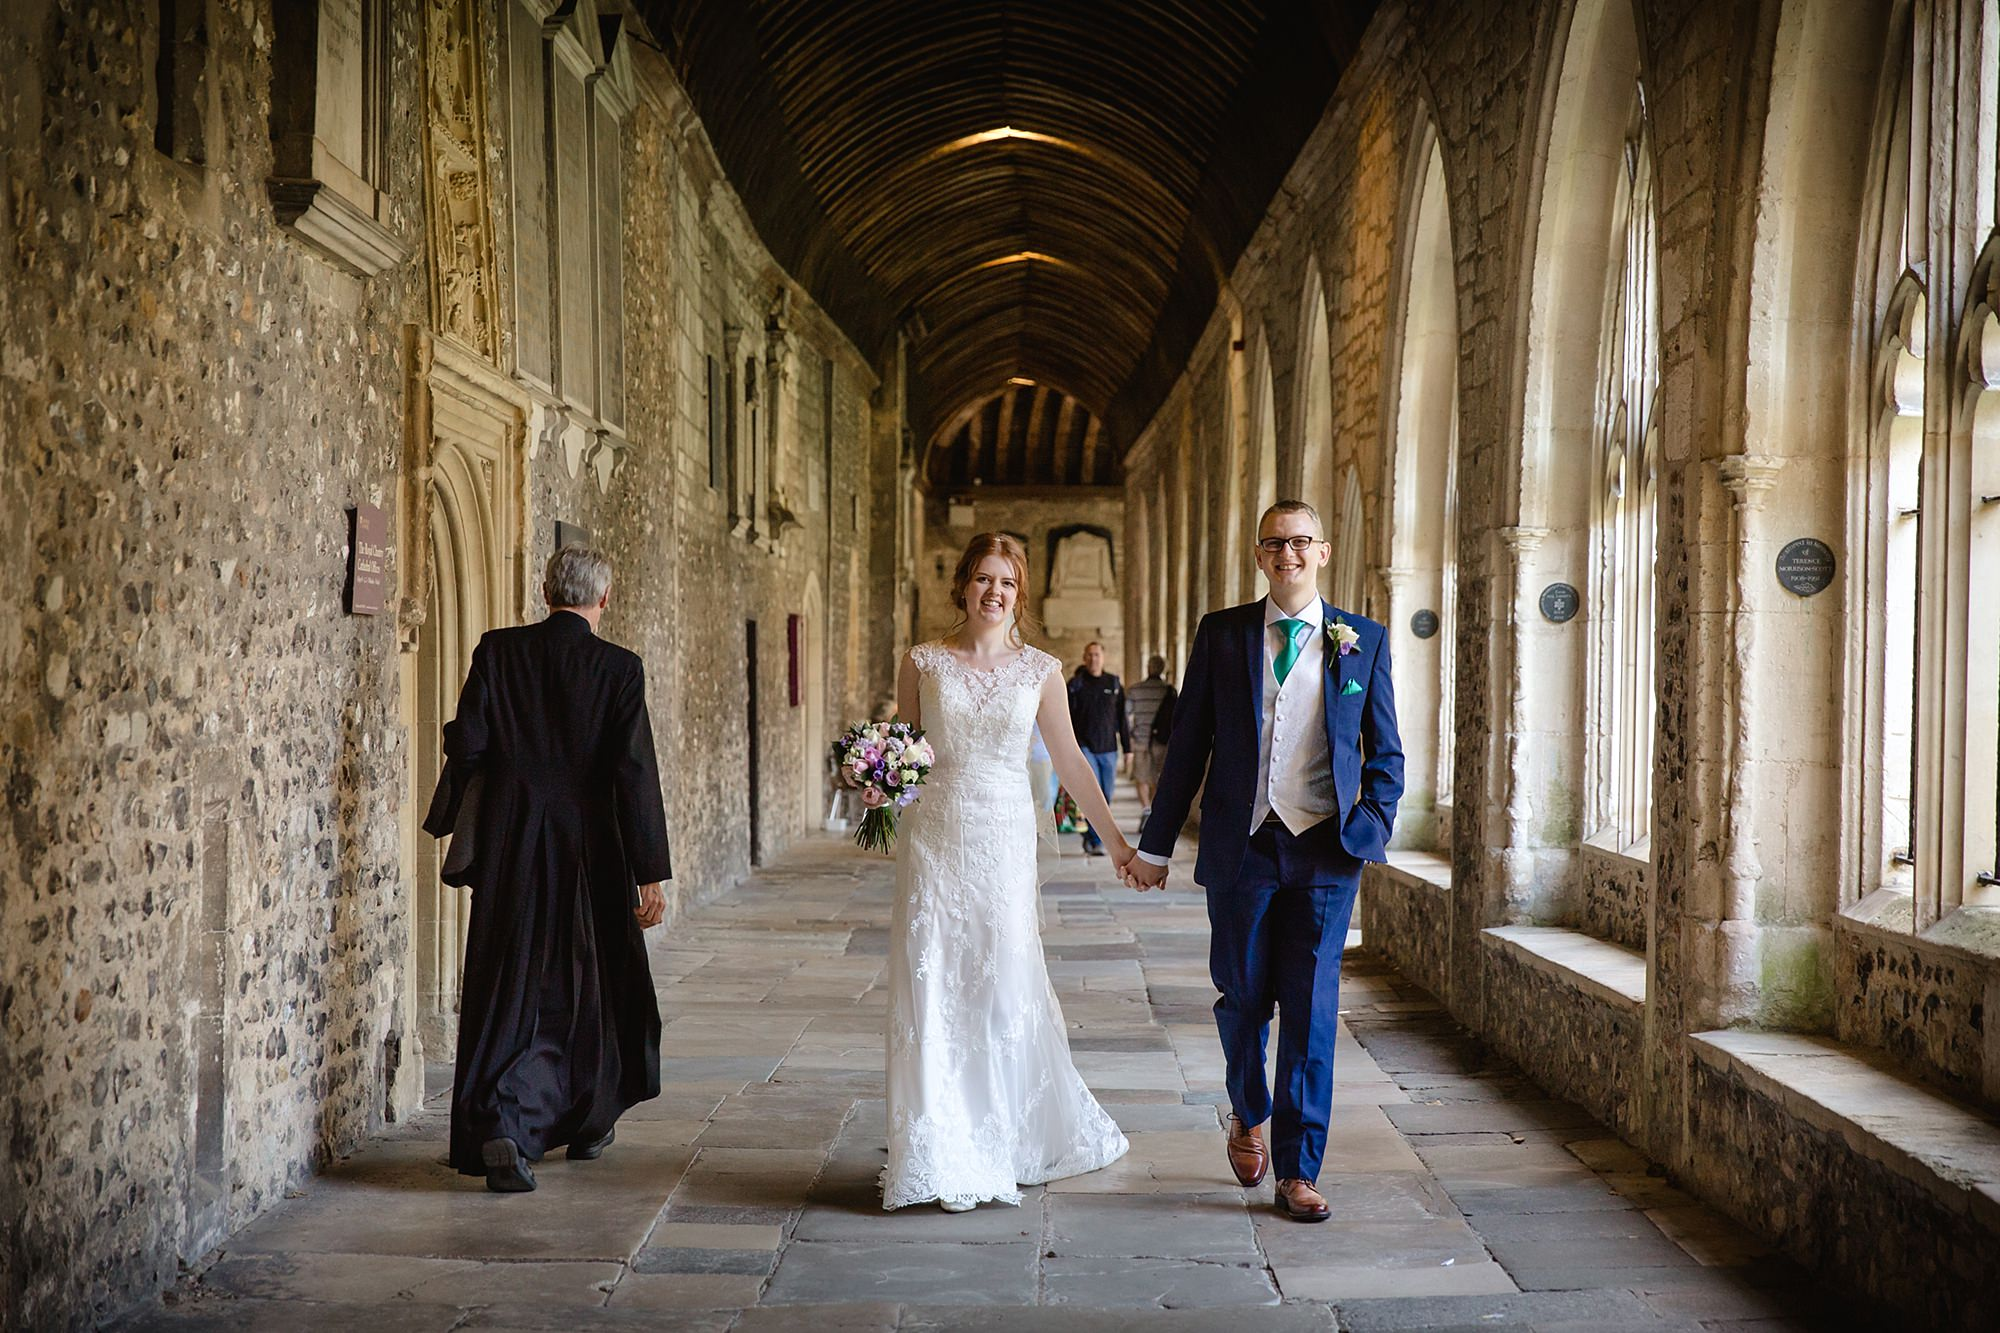 Canon Lane Chichester wedding bride and groom walk through Chichester cloisters